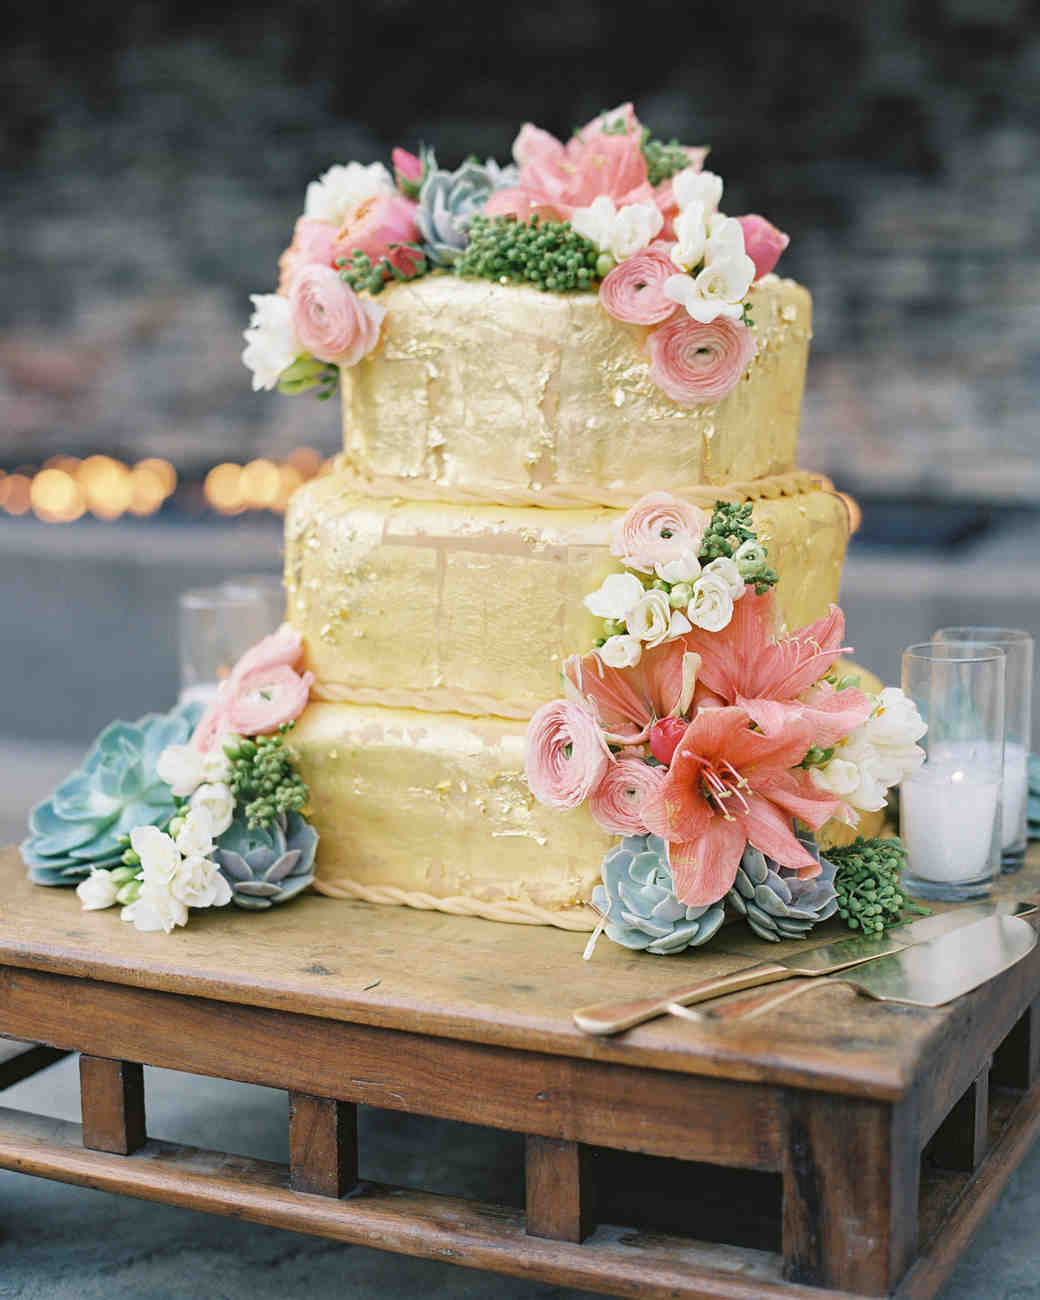 32 Amazing Wedding Cakes You Have to See to Believe | Martha Stewart ...